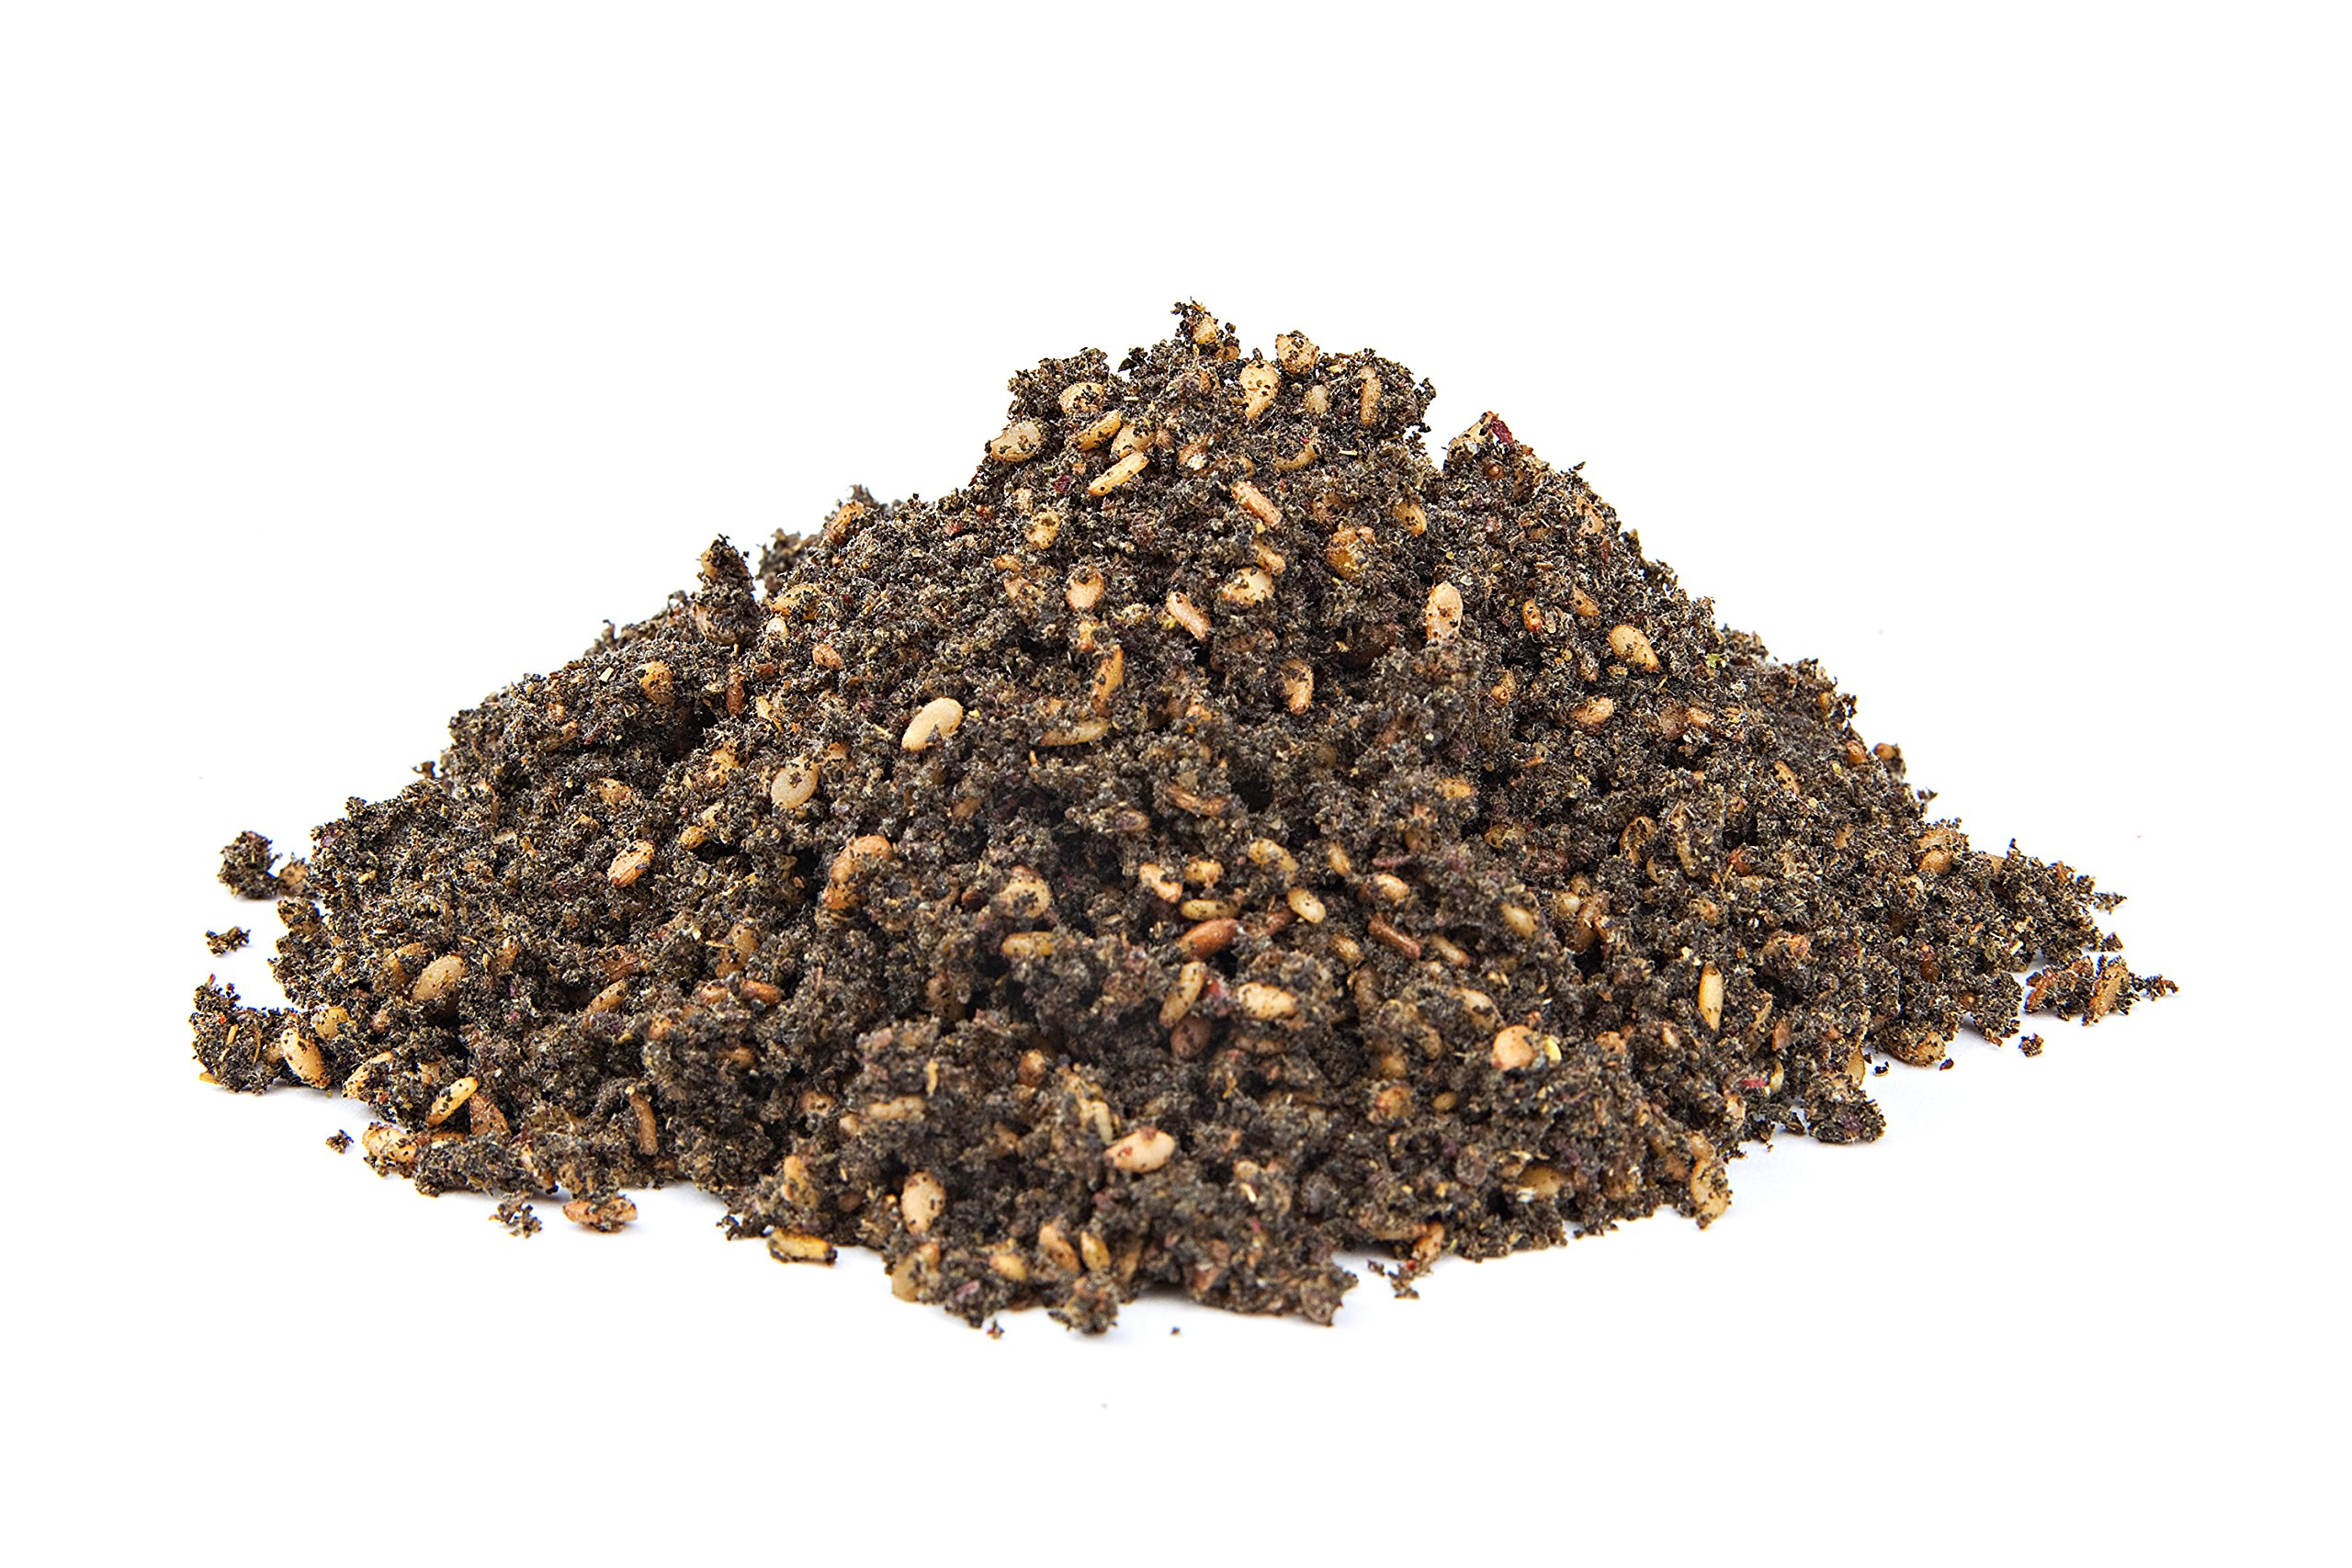 The Spice Way - Real Zaatar with Hyssop spice blend (No Thyme that is used as an hyssop substitute). With sumac. No Additives, No Perservatives, (Za'atar / zatar / zahtar / zahatar / za atar) 2oz